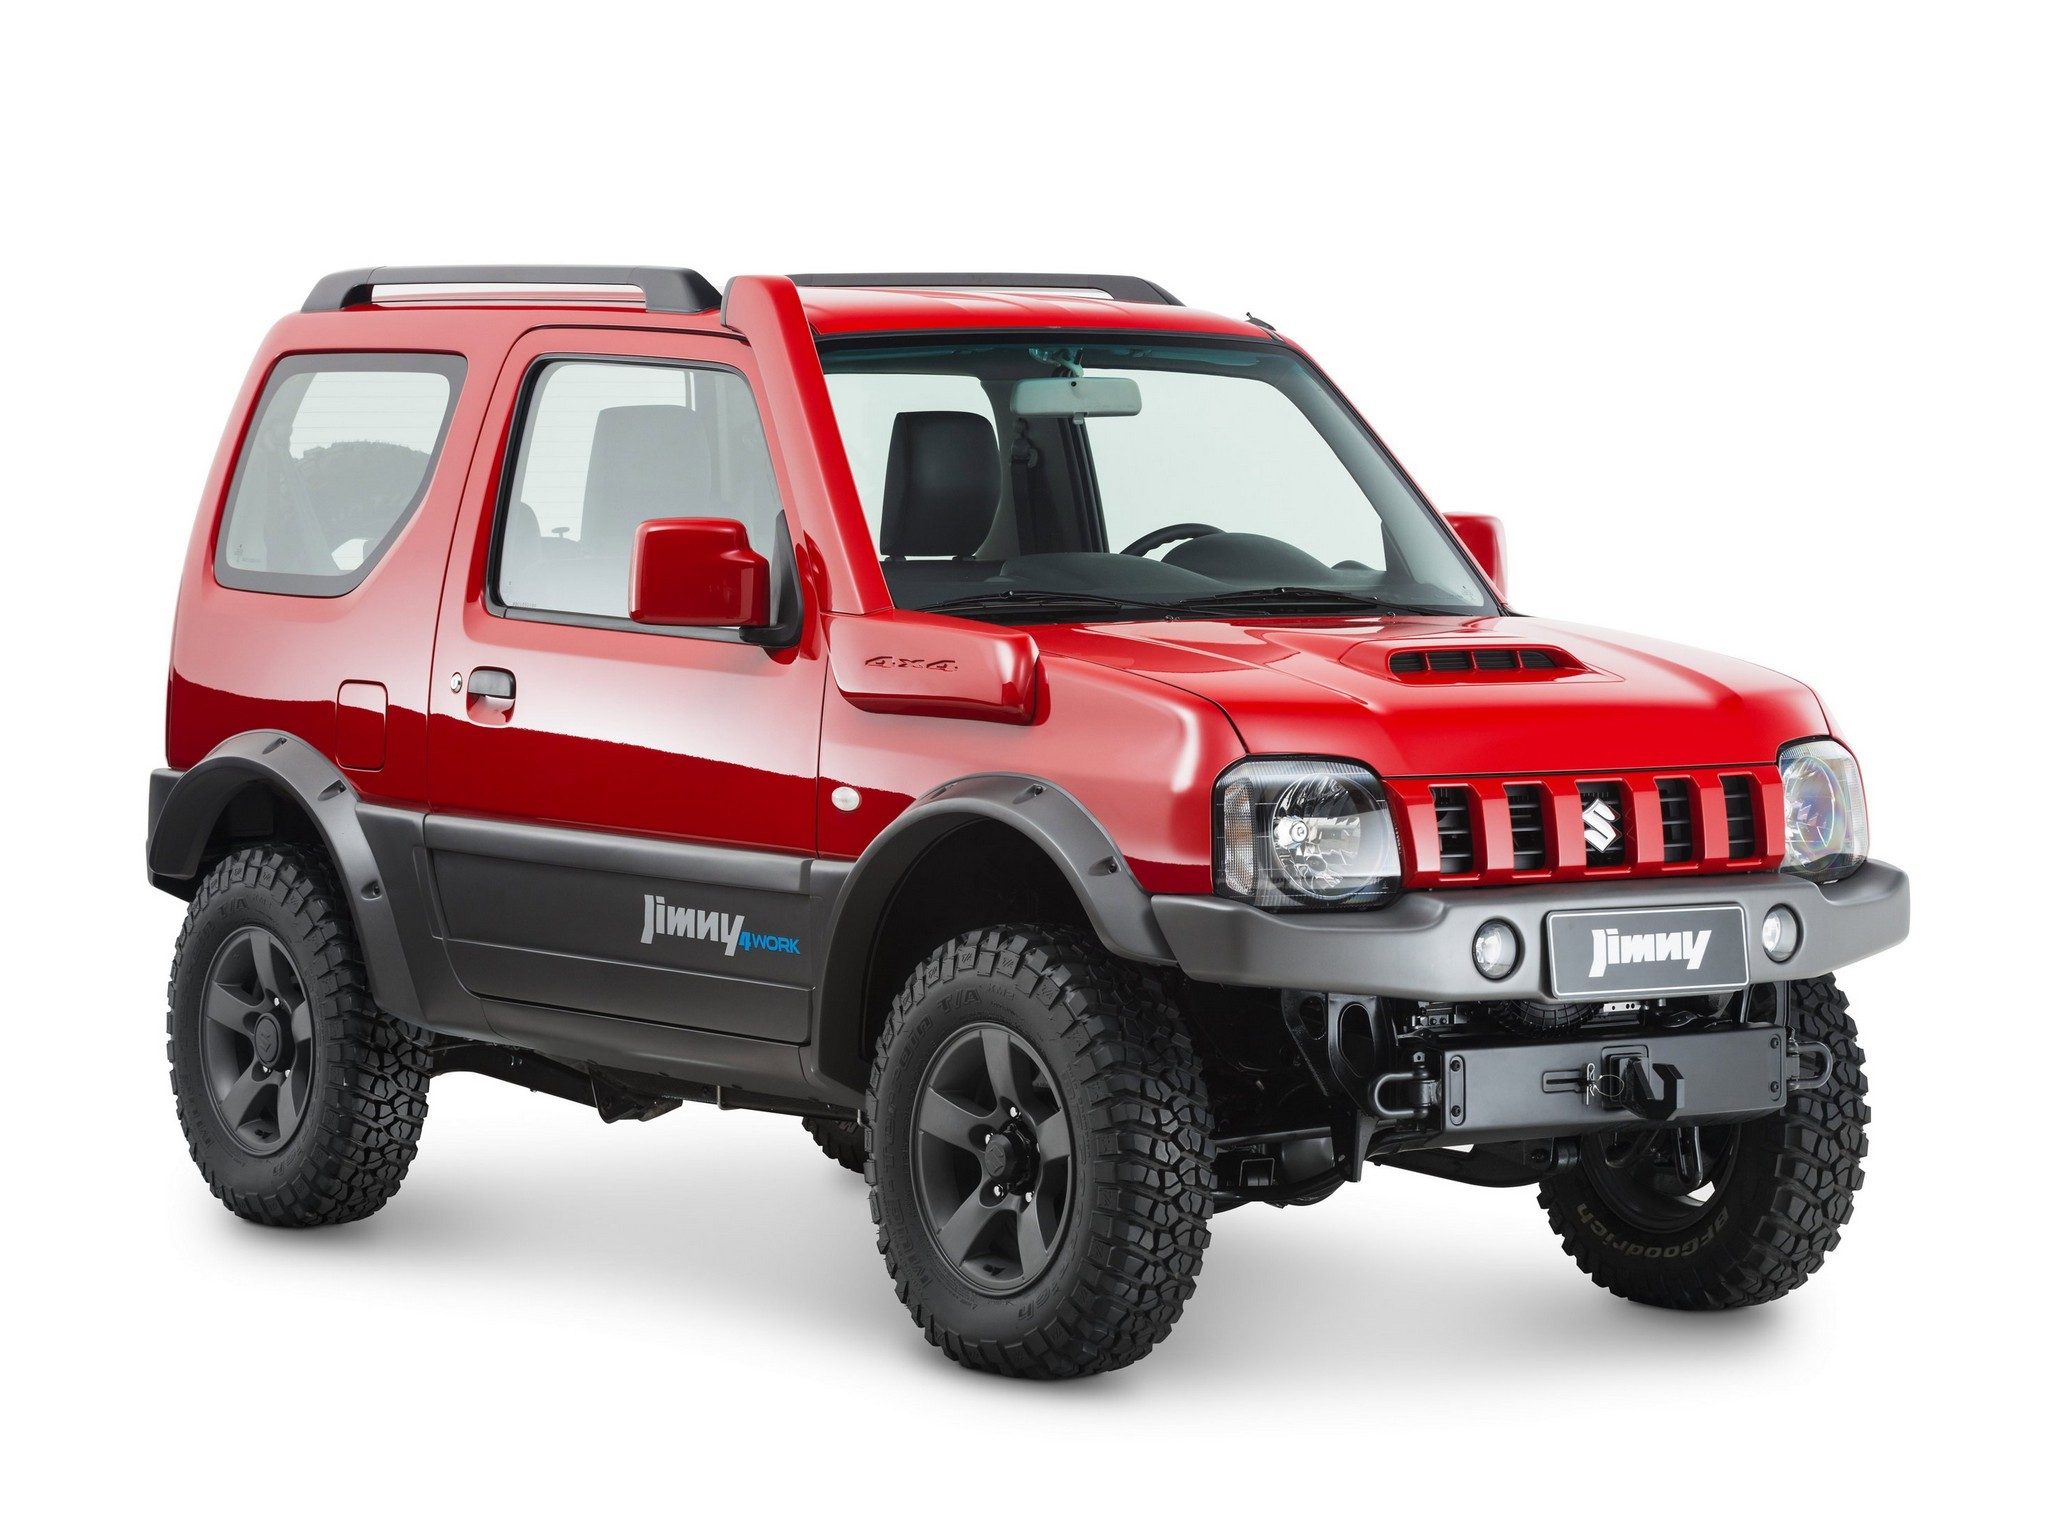 suzuki jimny specs photos 2012 2013 2014 2015 2016. Black Bedroom Furniture Sets. Home Design Ideas